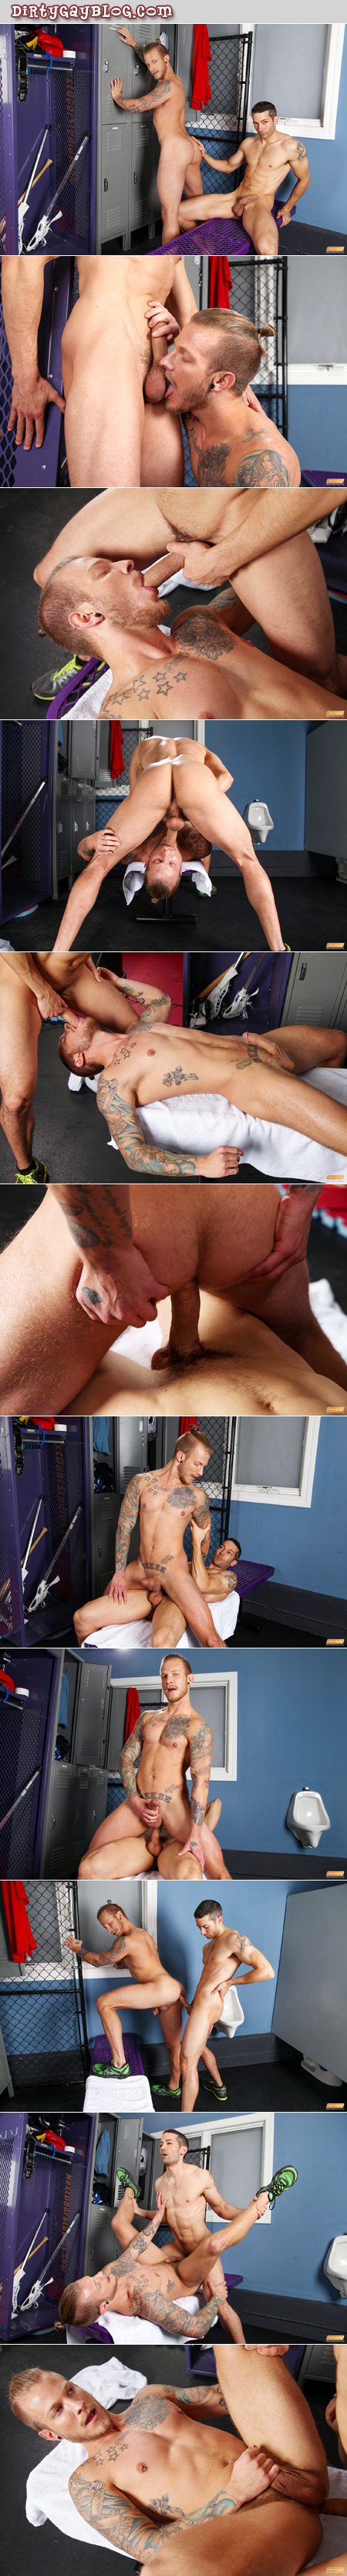 Straight personal trainer has gay sex for the first time with one of his male clients.